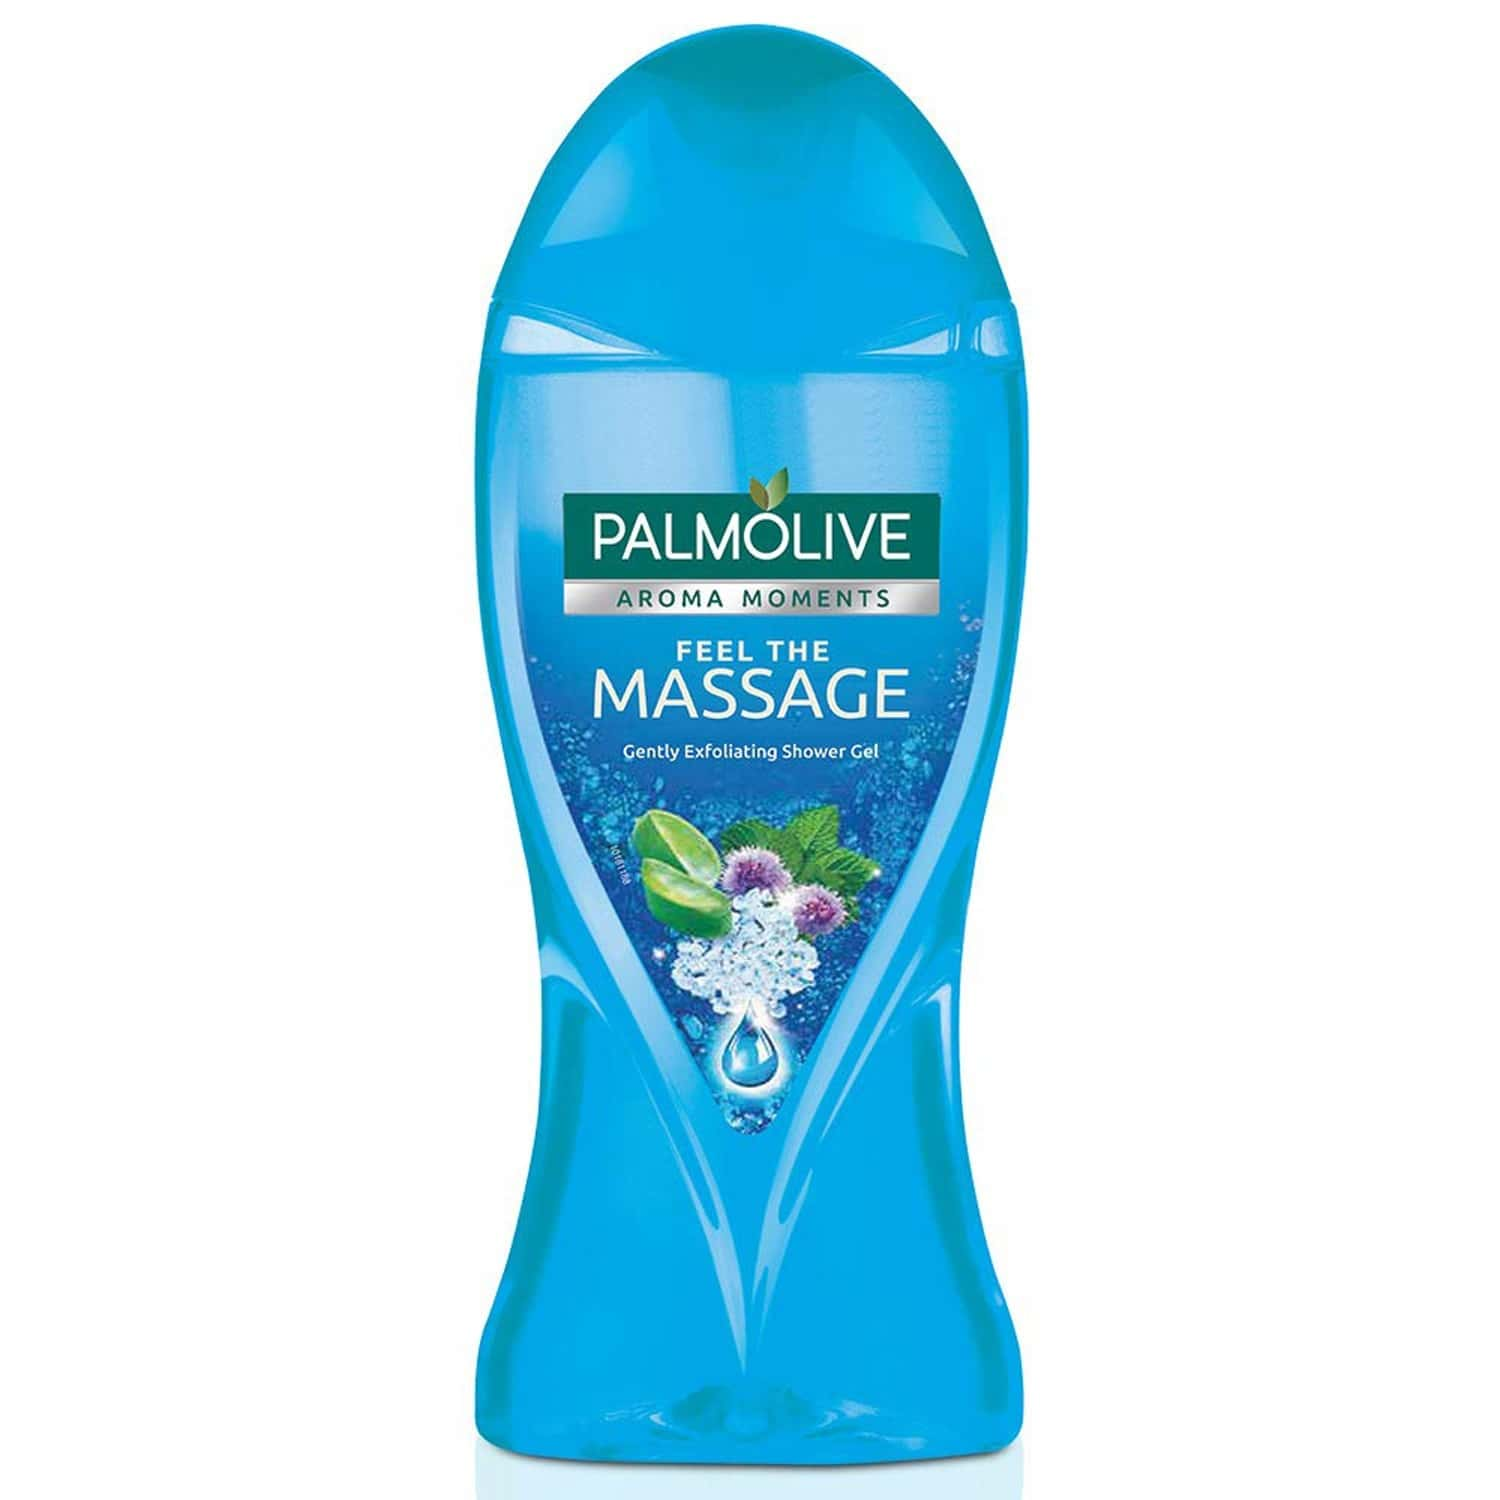 Palmolive Shower Gel 250 Ml Feel The Massage Body Wash - Imported